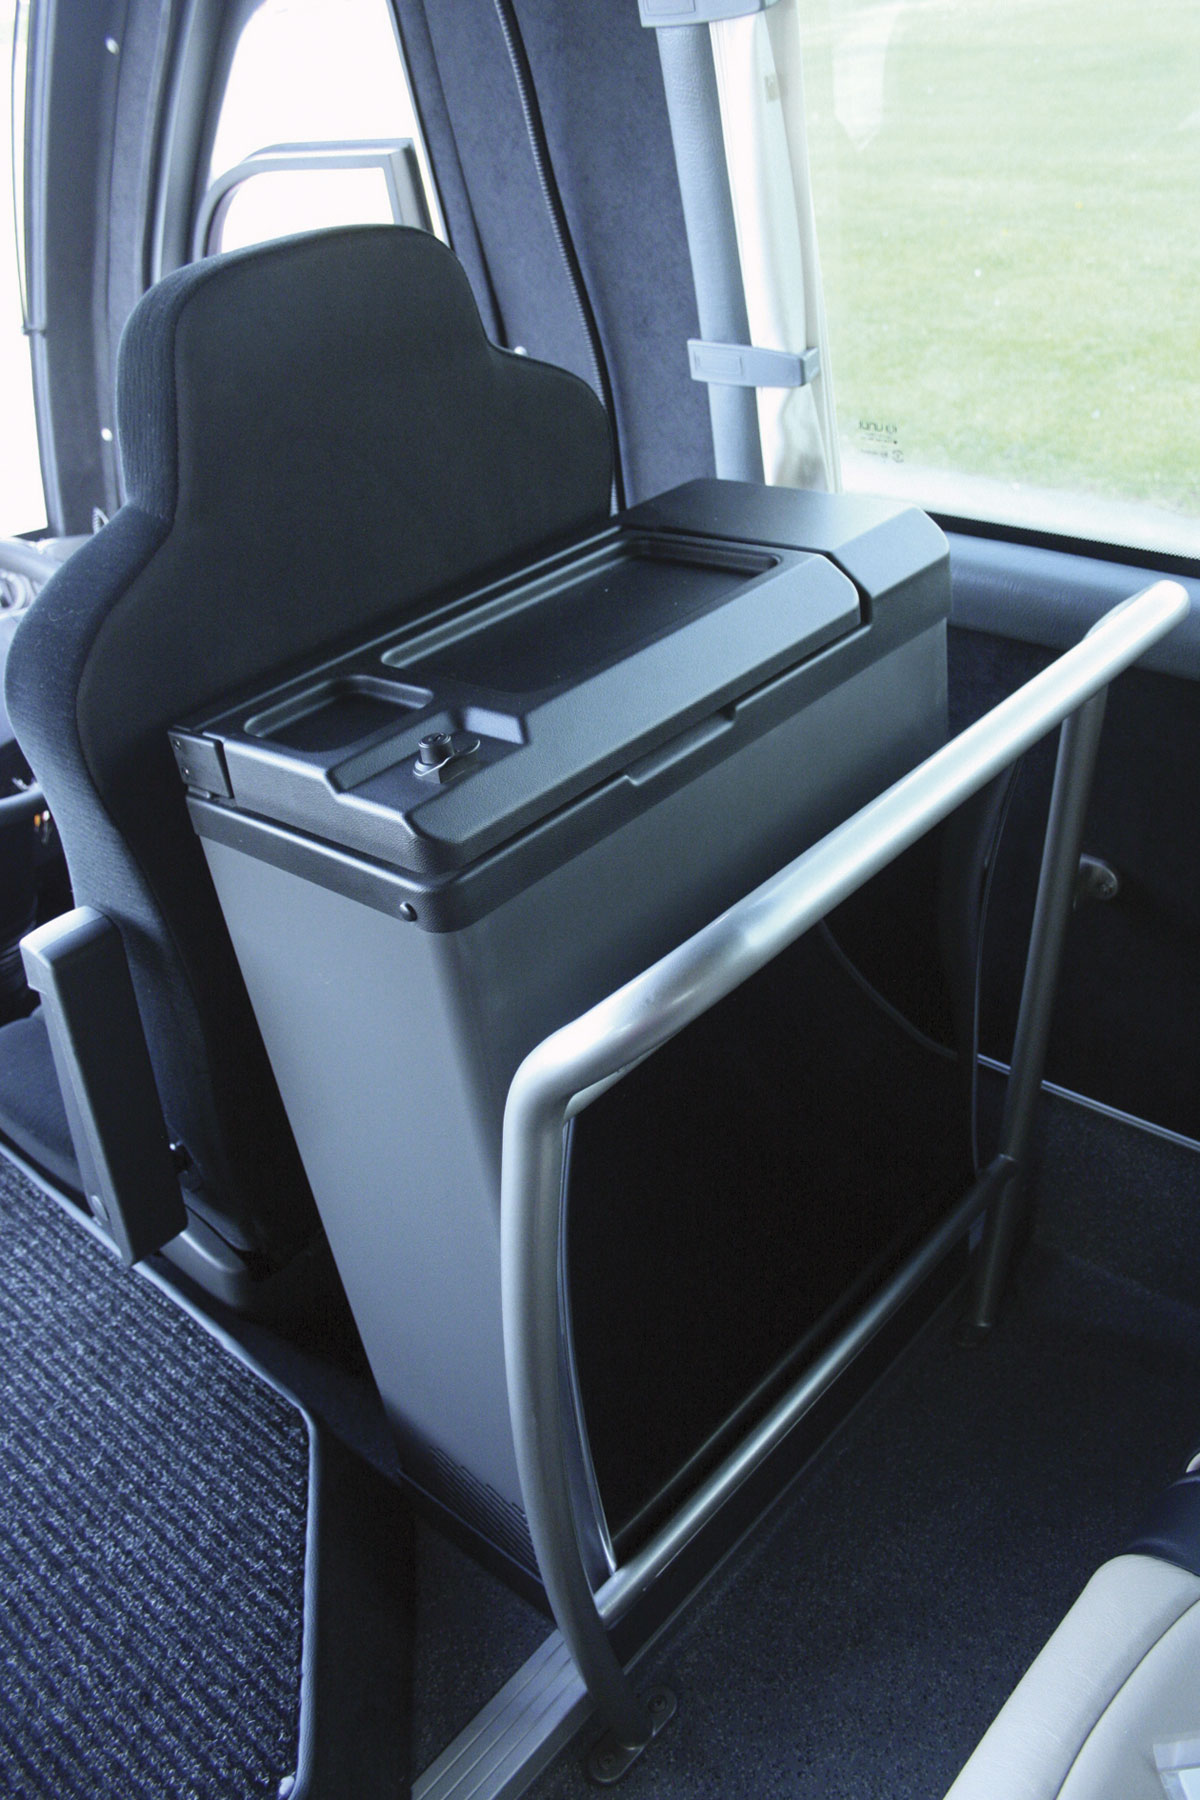 A neat fridge unit mounted behind the driver's seat is an option